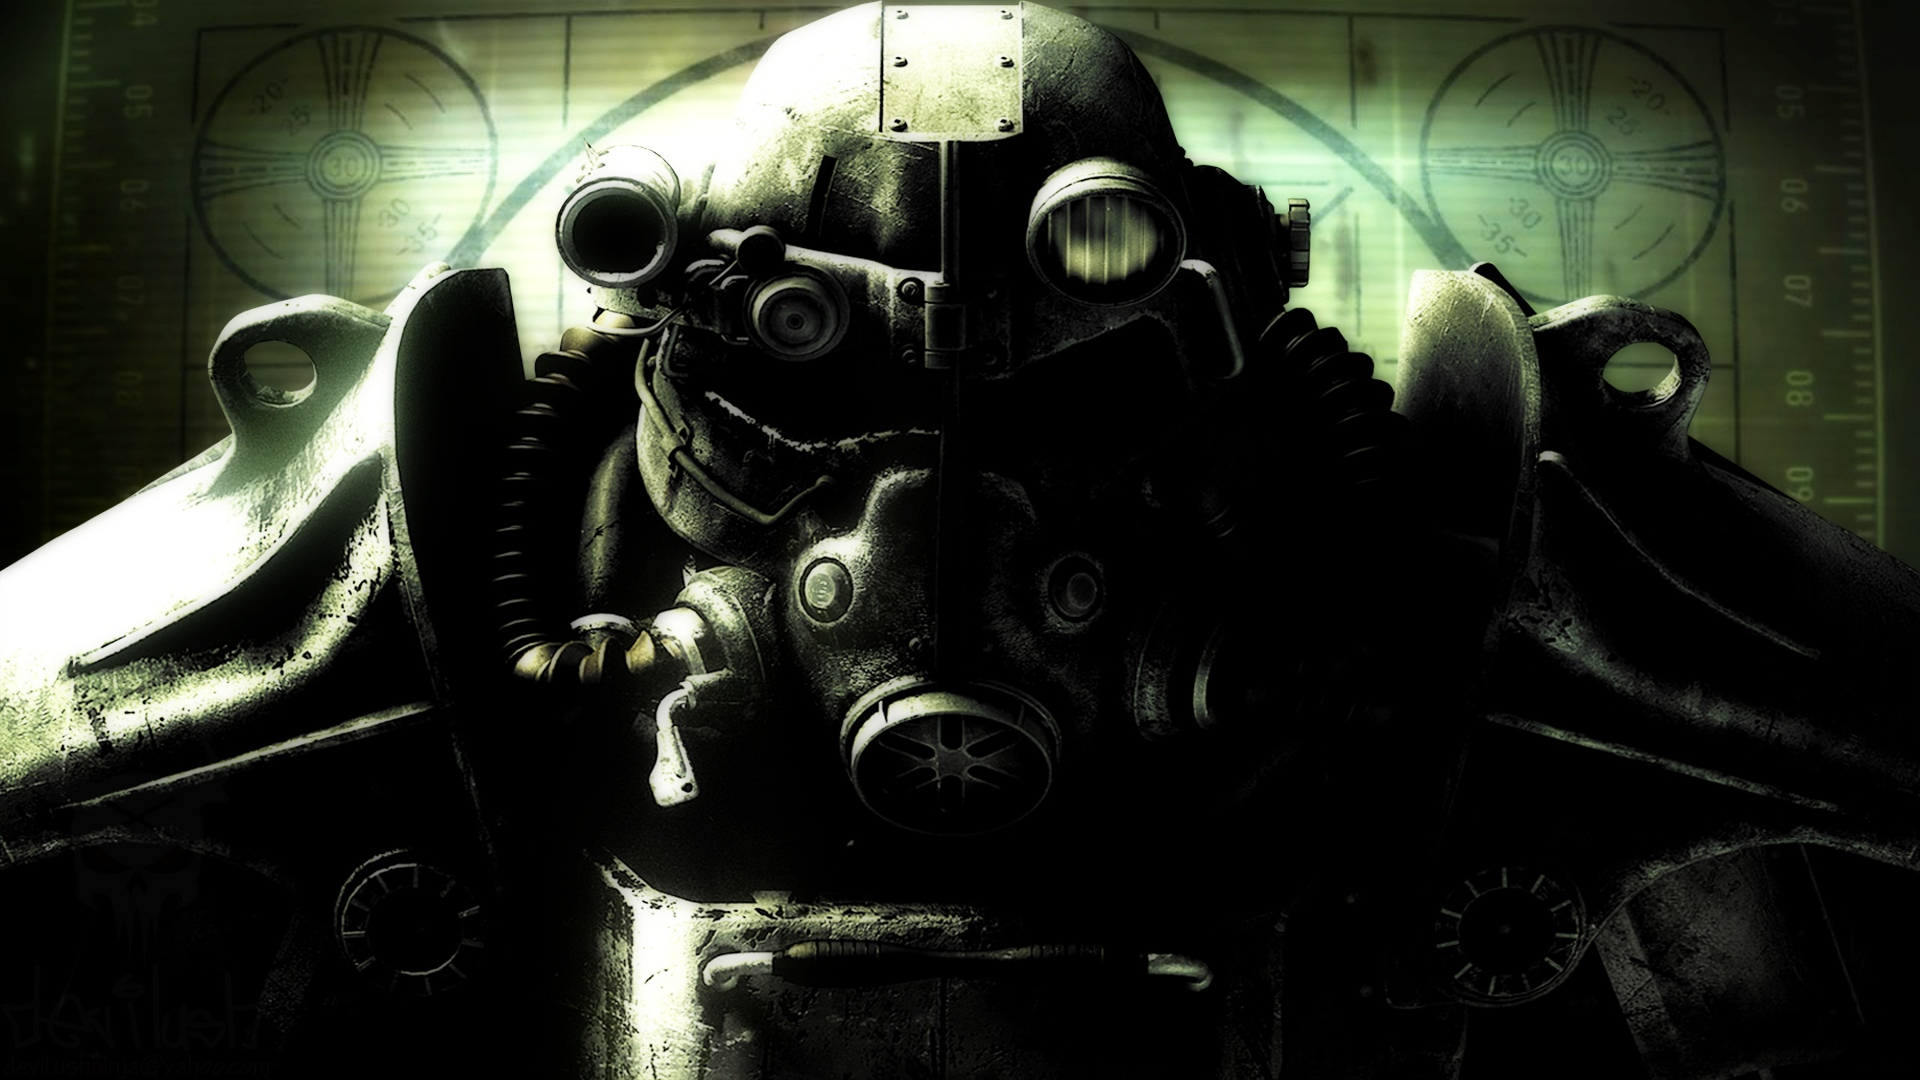 Nintnedo Fall Wallpapers Fallout 3 Xbox 360 Nerd Bacon Reviews